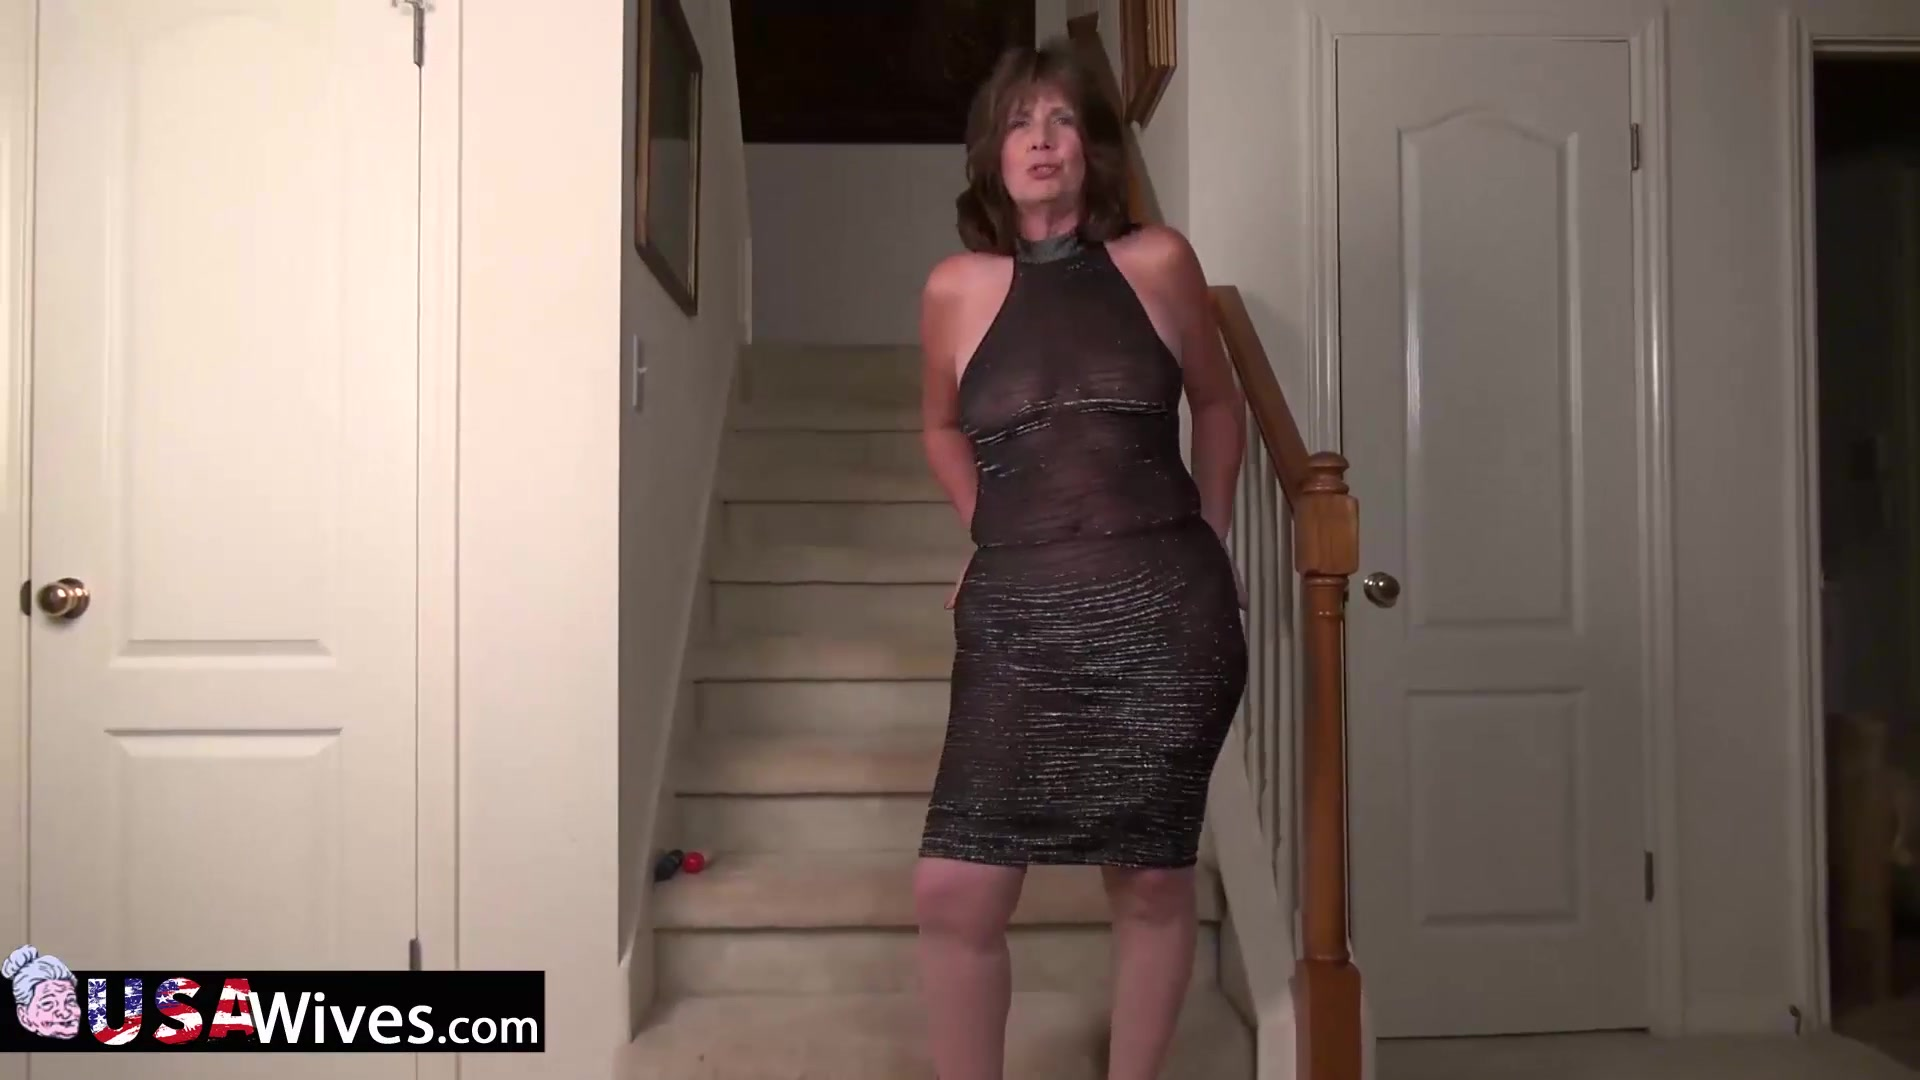 Hot Nude Bbw mature lesbian pictures free